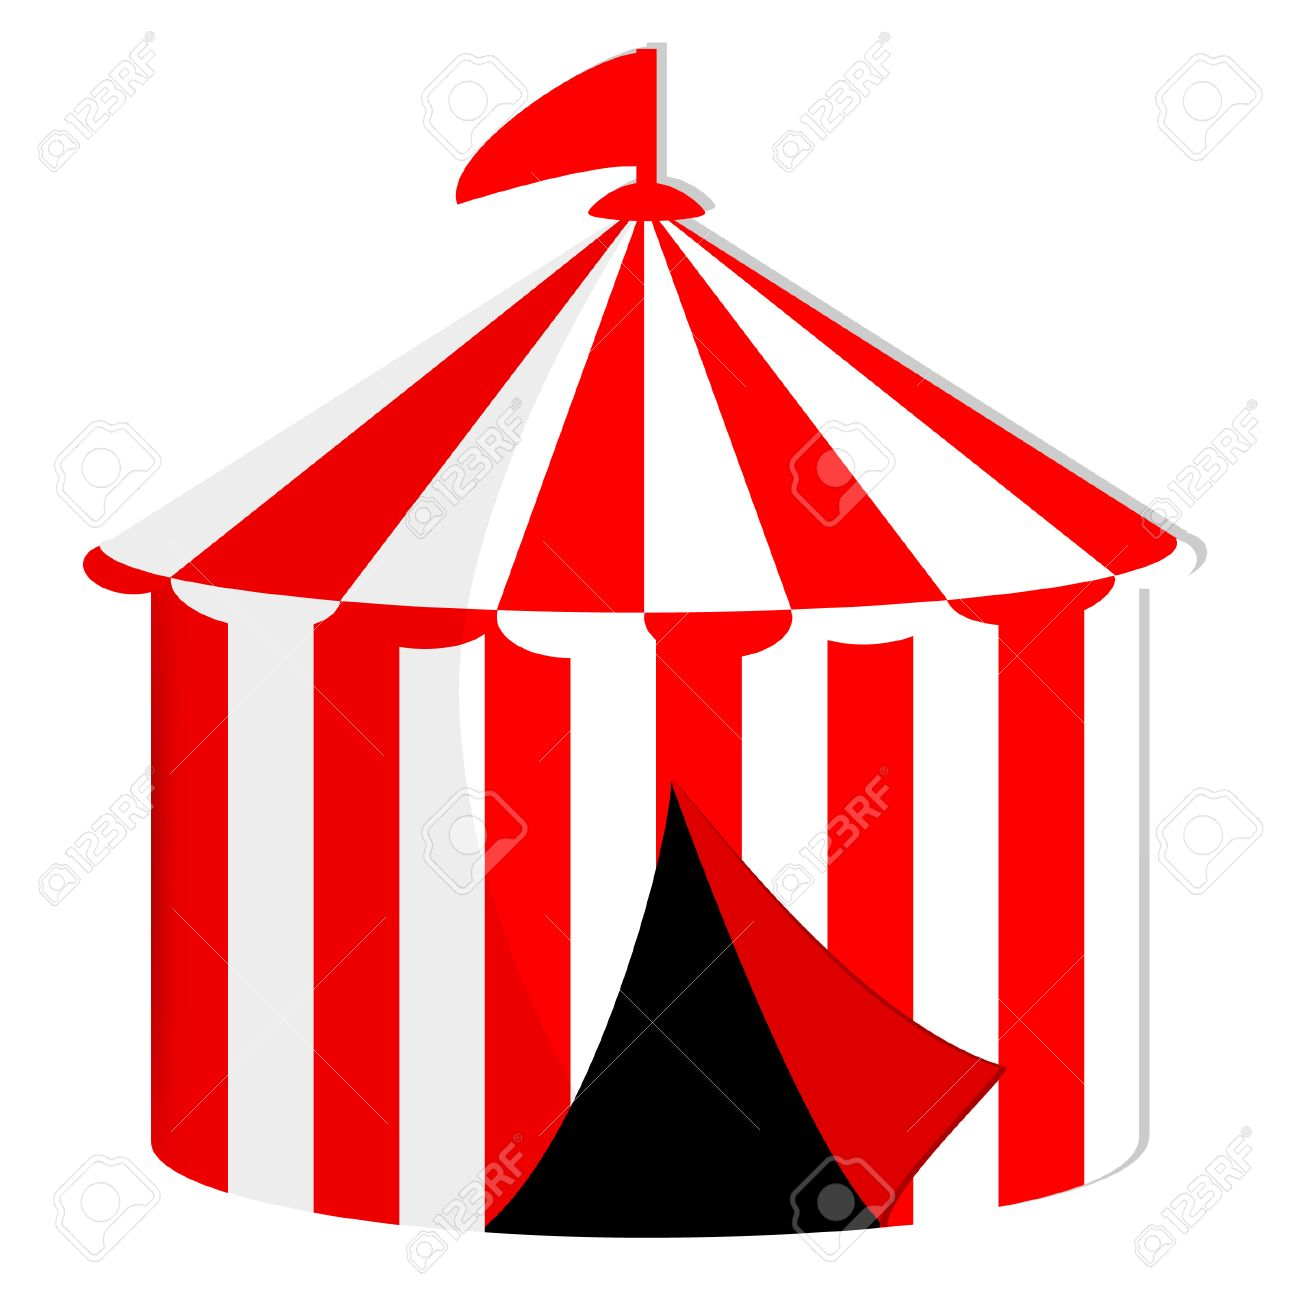 Red and white striped circus tent with flag vector icon isolated marquee carnival Stock  sc 1 st  123RF.com & Red And White Striped Circus Tent With Flag Vector Icon Isolated ...